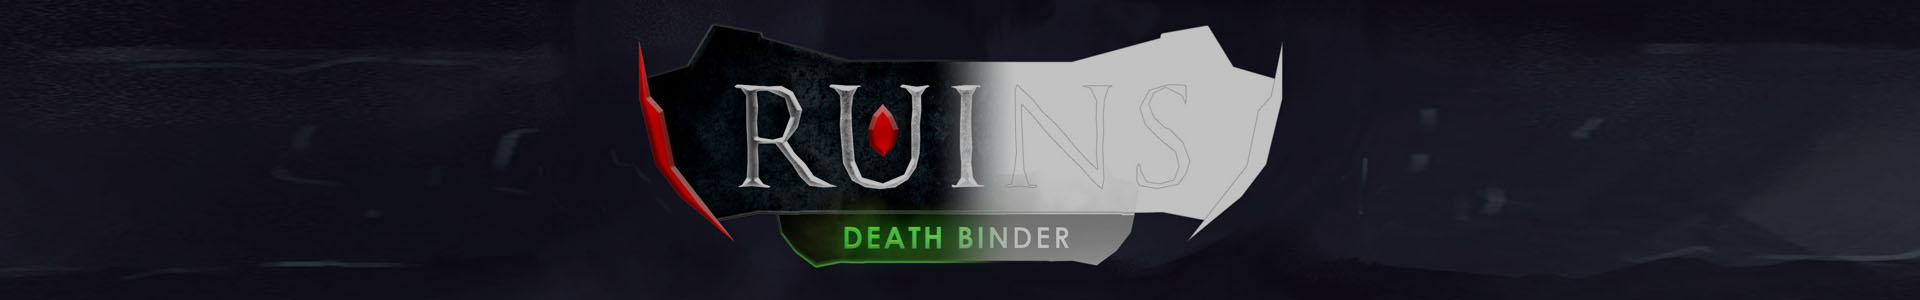 Dev log #2 Ruins Death Binder